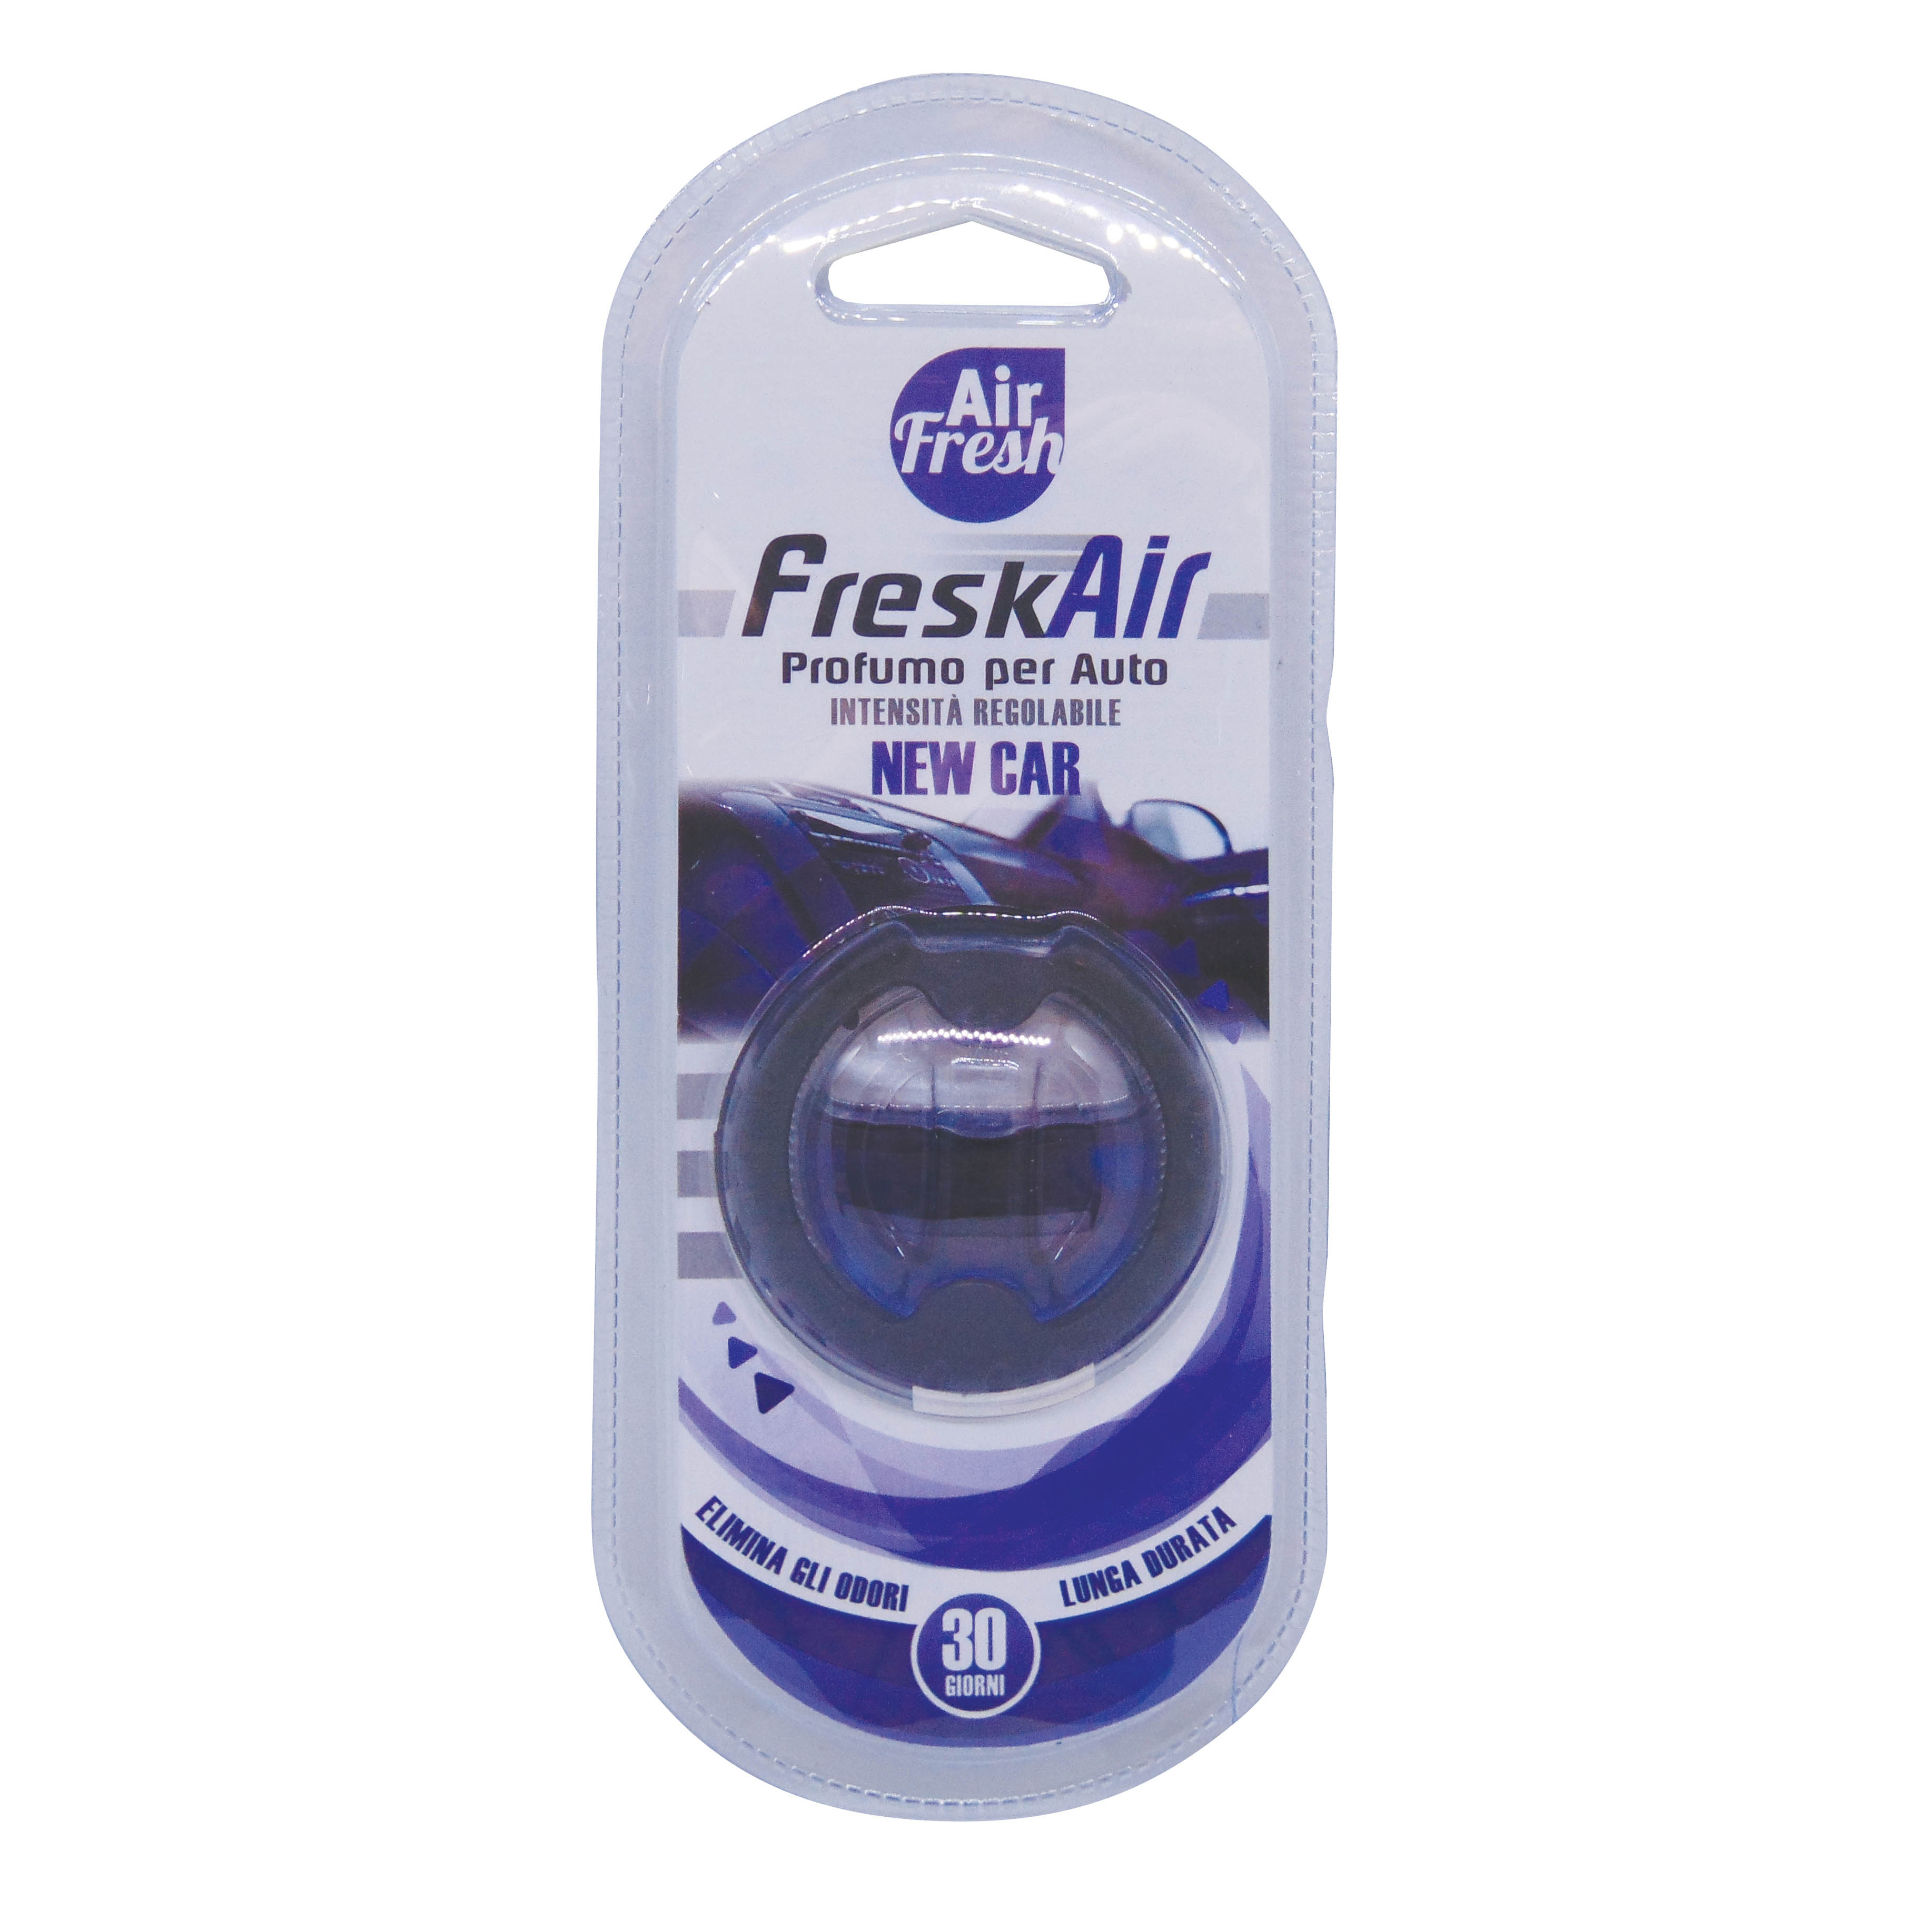 FRESKAIR PROF.AUTO 7ML - NEW CARFreskair